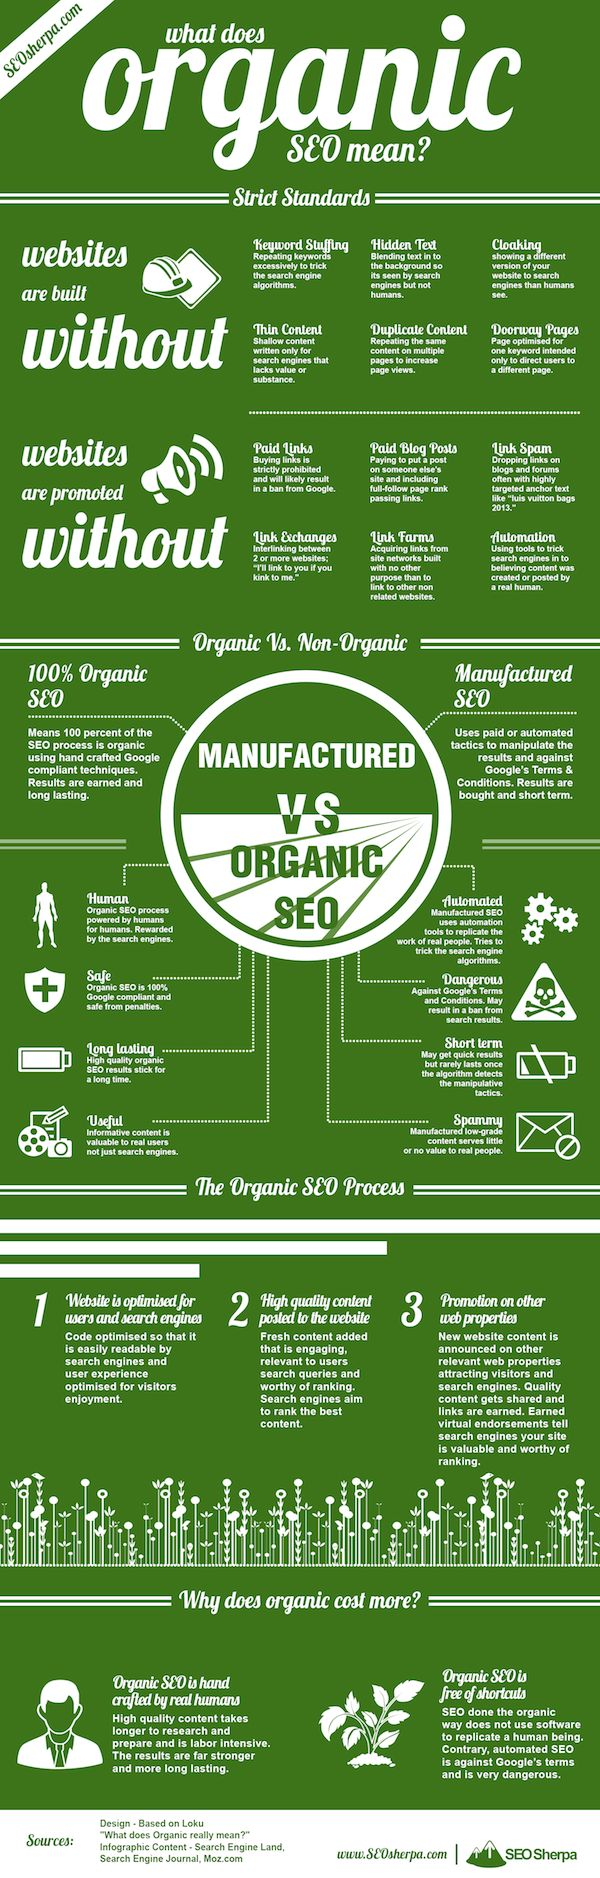 What does Organic SEO Mean? infographic